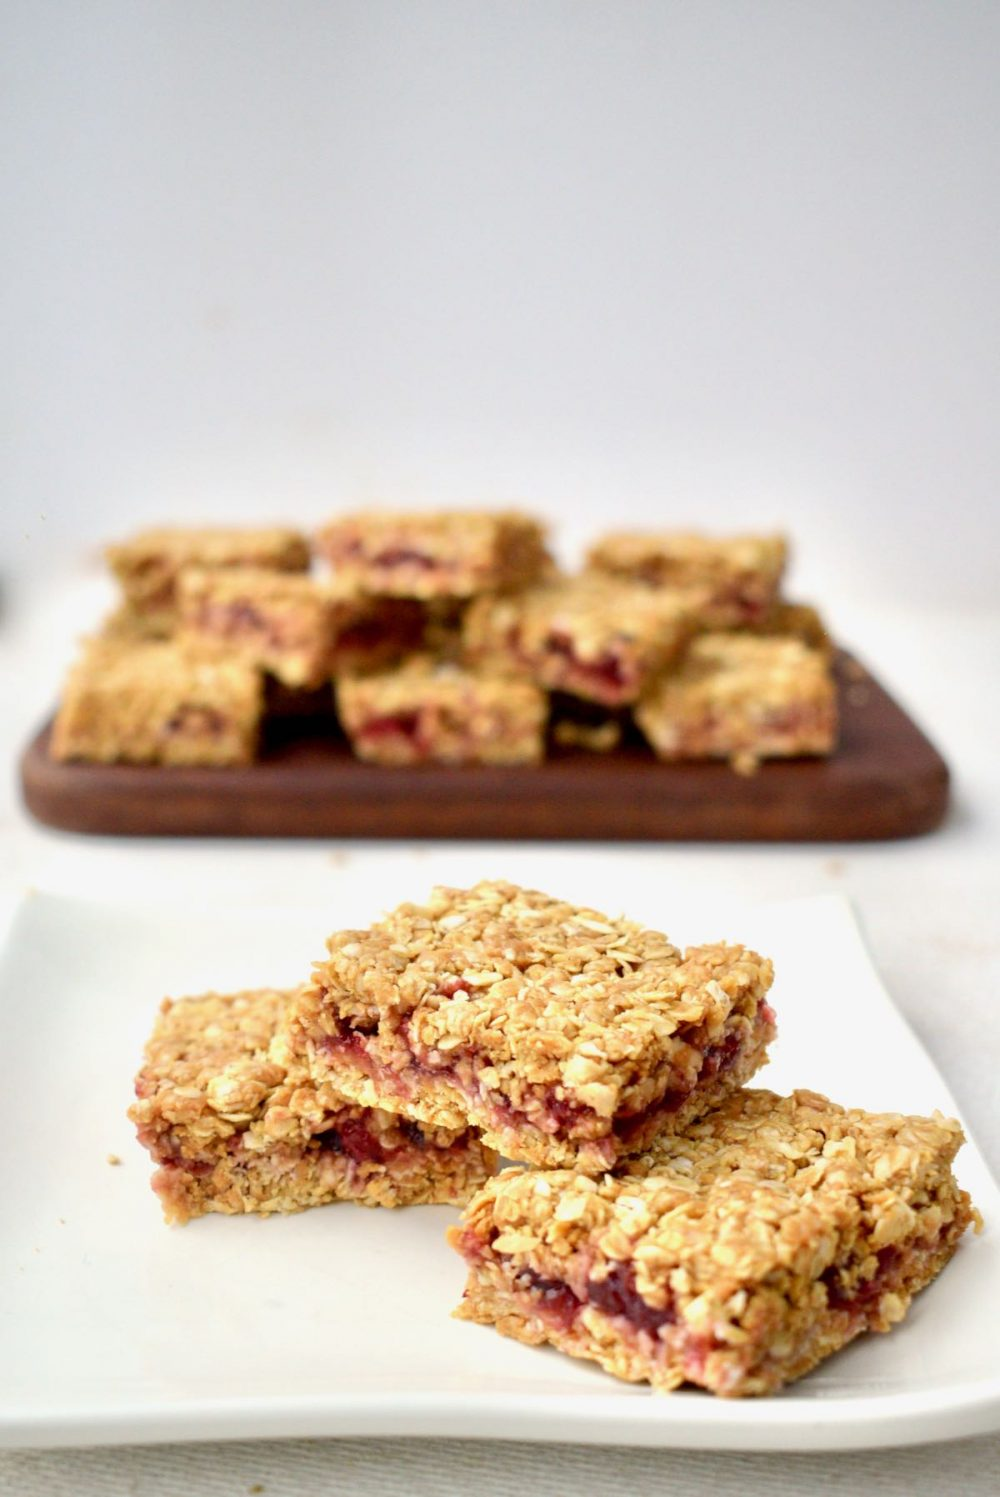 Three vegan oat bars on a plate, with the remaining bars in the background